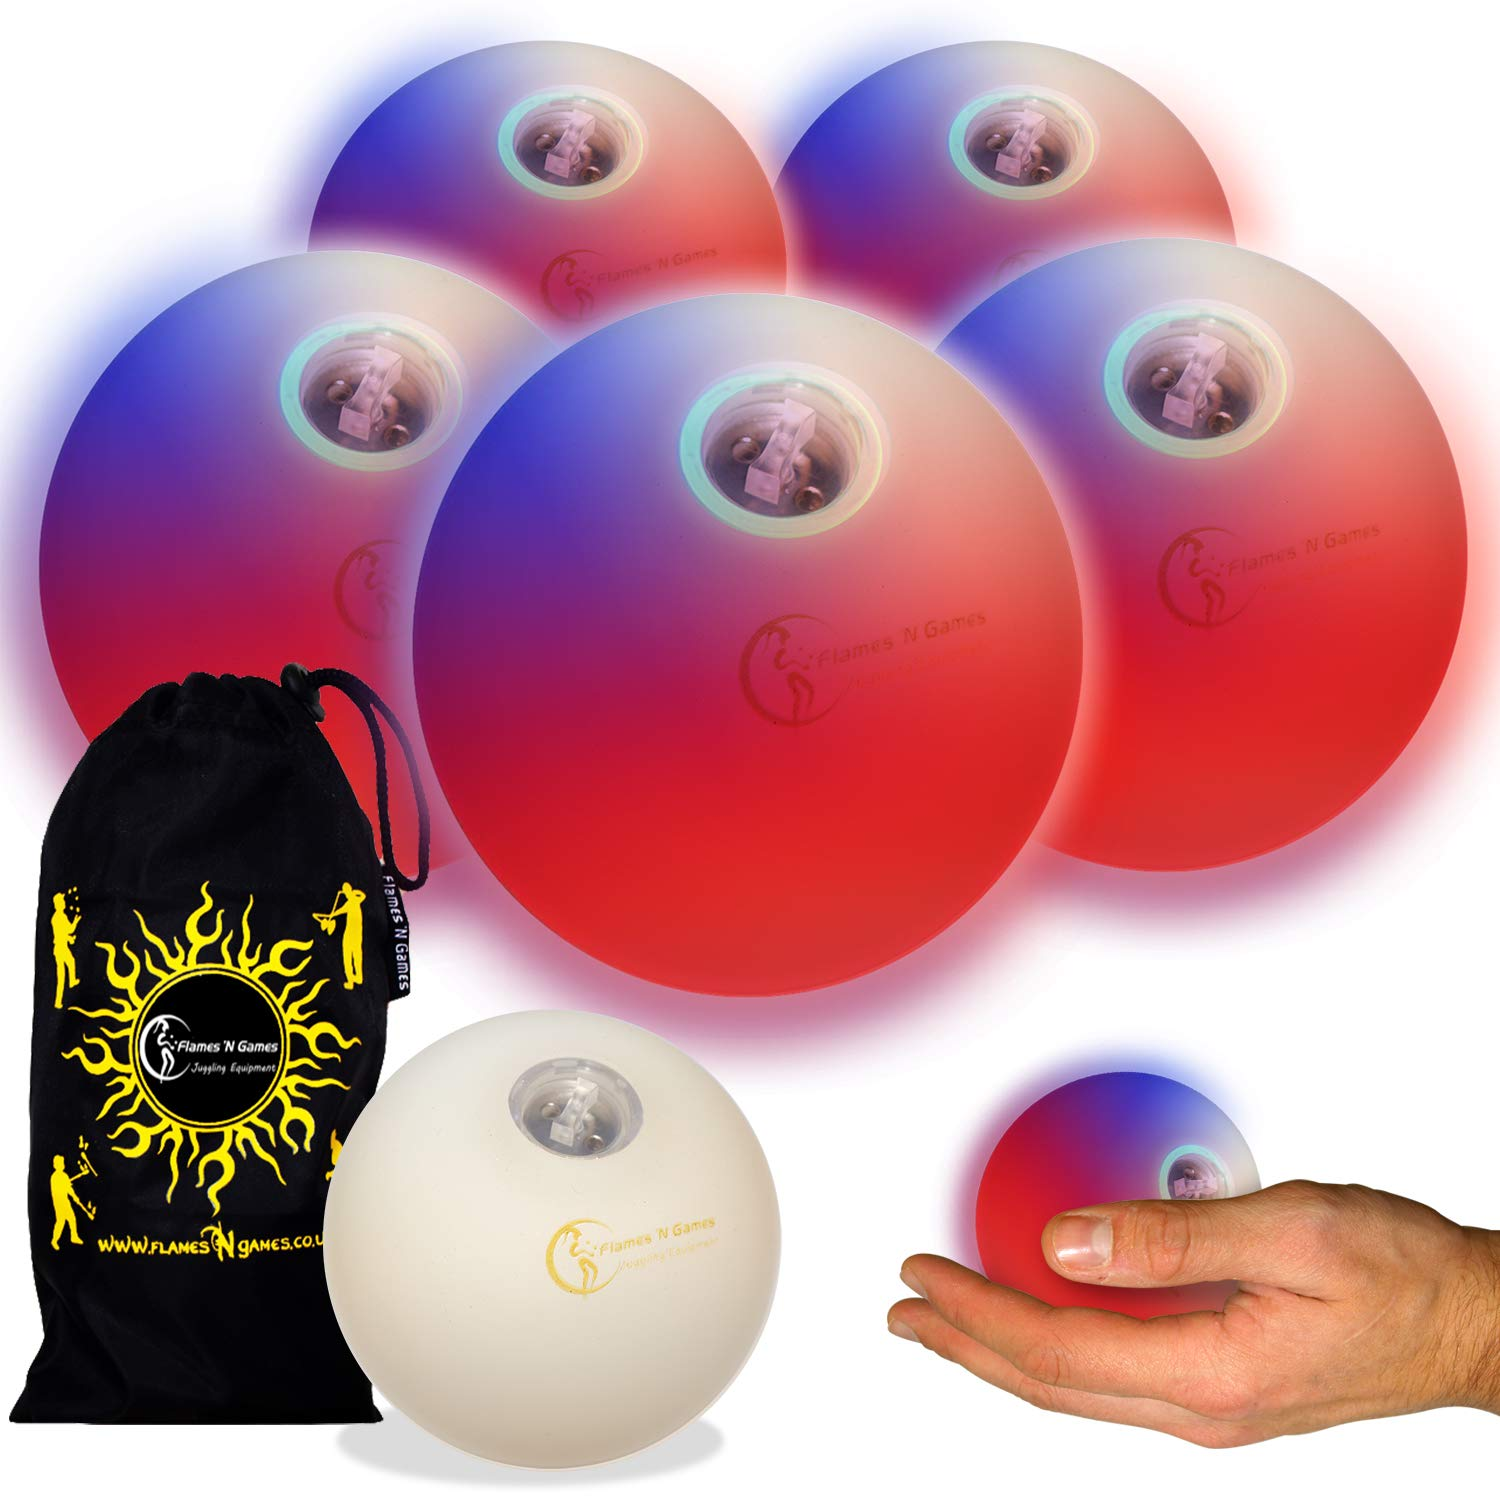 Flames N Games Pro LED Glow Juggling Balls 5X (Fast Strobe RGB Effect) Ultra Bright Battery Powered Glow LED Juggling Ball Set with Travel Bag. (Set of 5) by Flames N Games Juggling Ball Sets